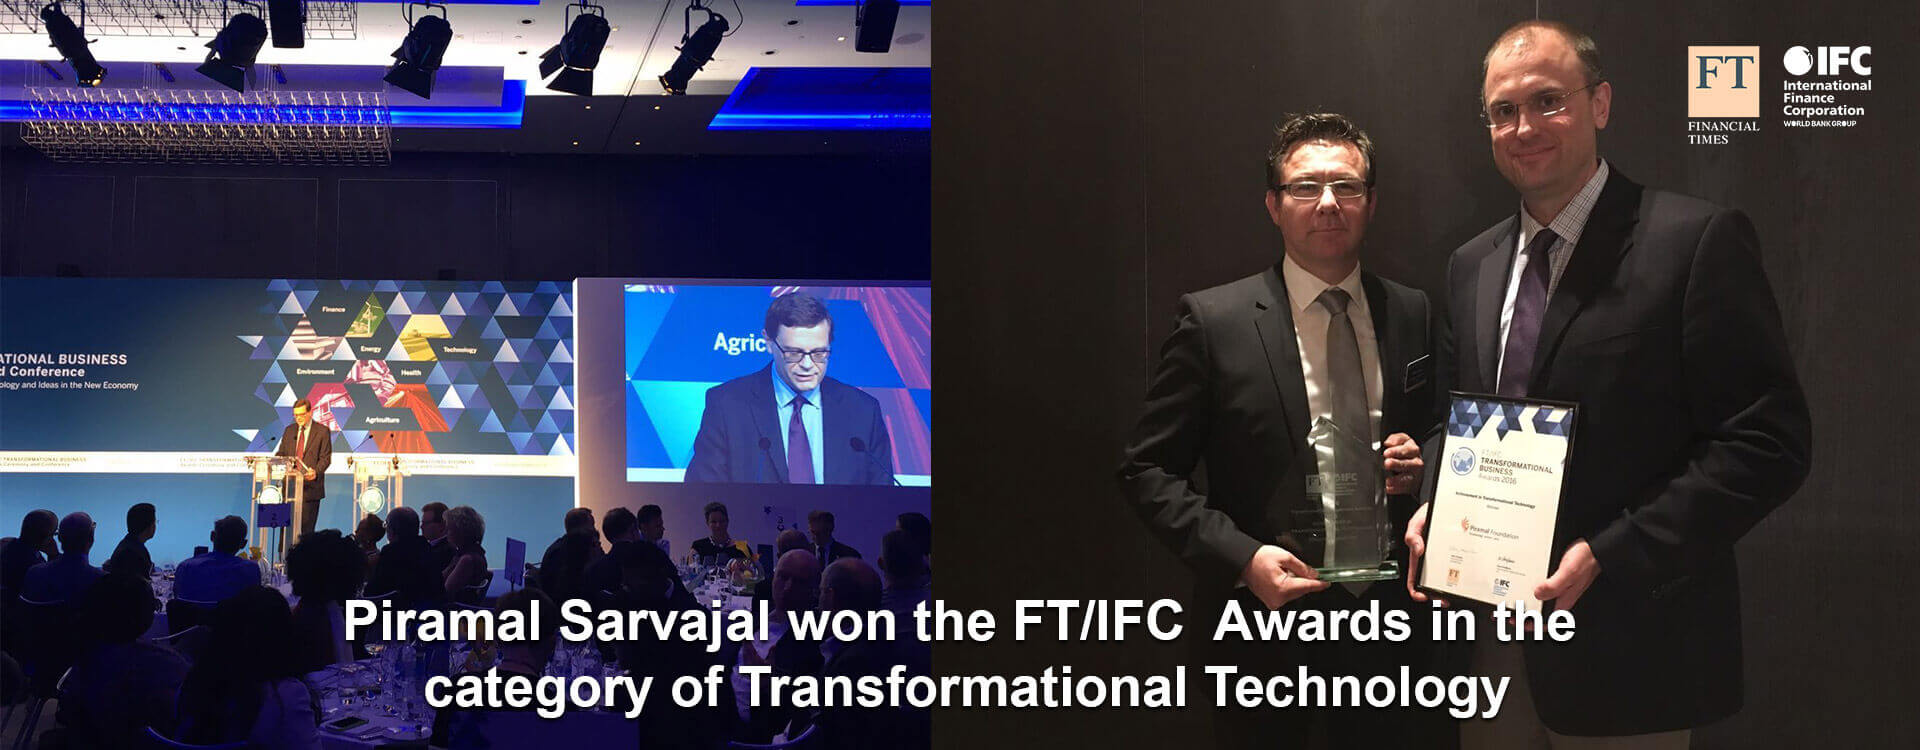 sarvajal-won-ft-ifc-awards